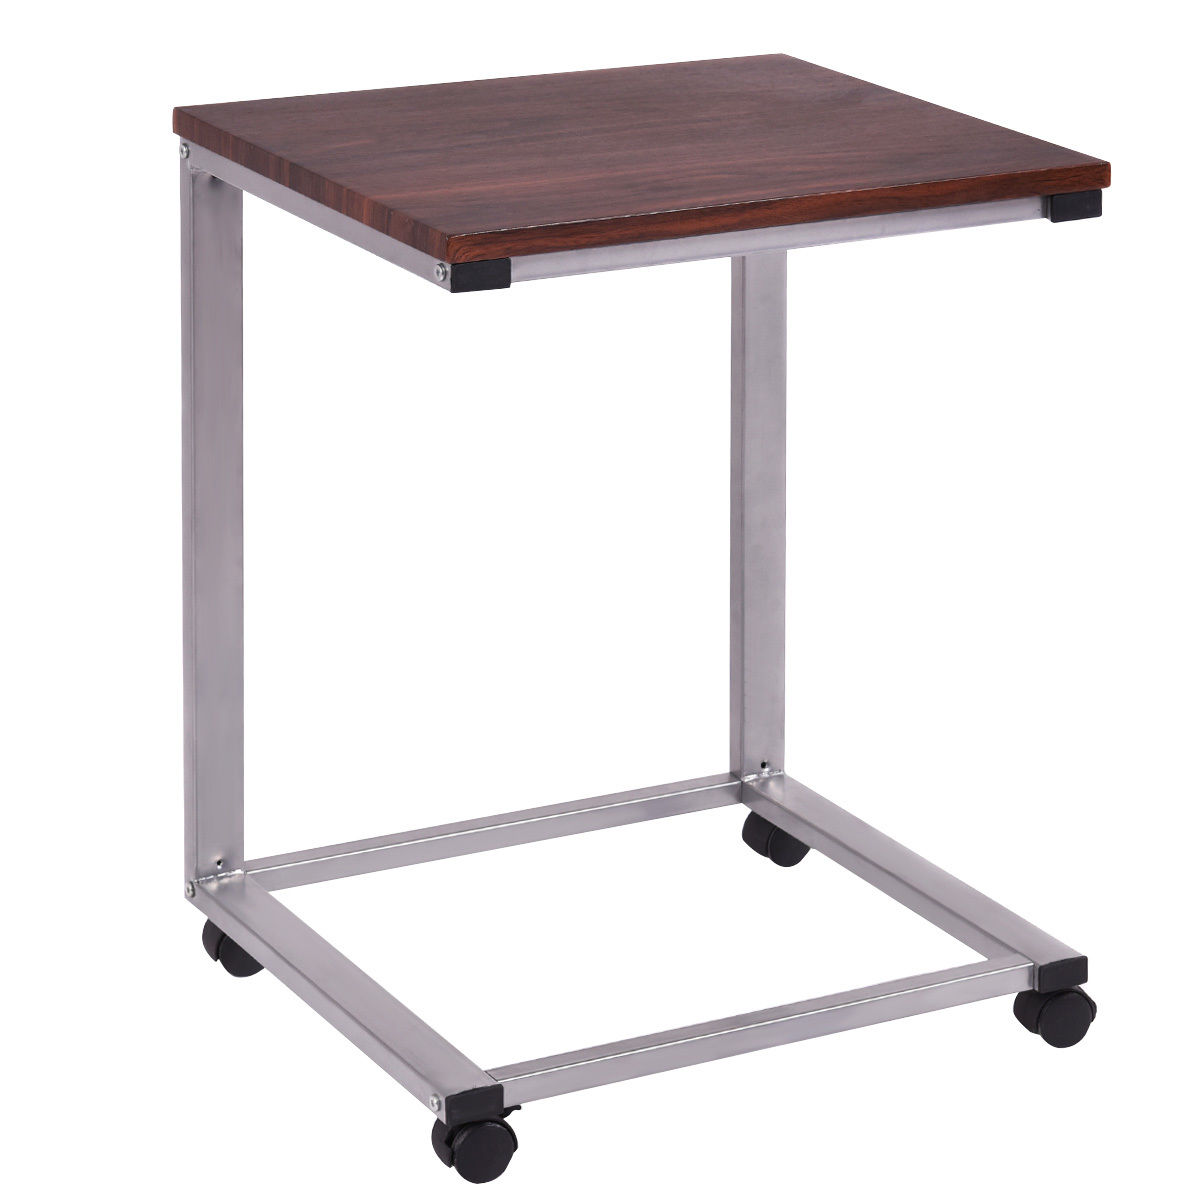 Charmant Giantex Coffee Tray Sofa Side End Table Modern Lap Stand TV Snack Ottoman  Couch Room Rolling Living Room Side Table HW54185 In Computer Desks From  Furniture ...